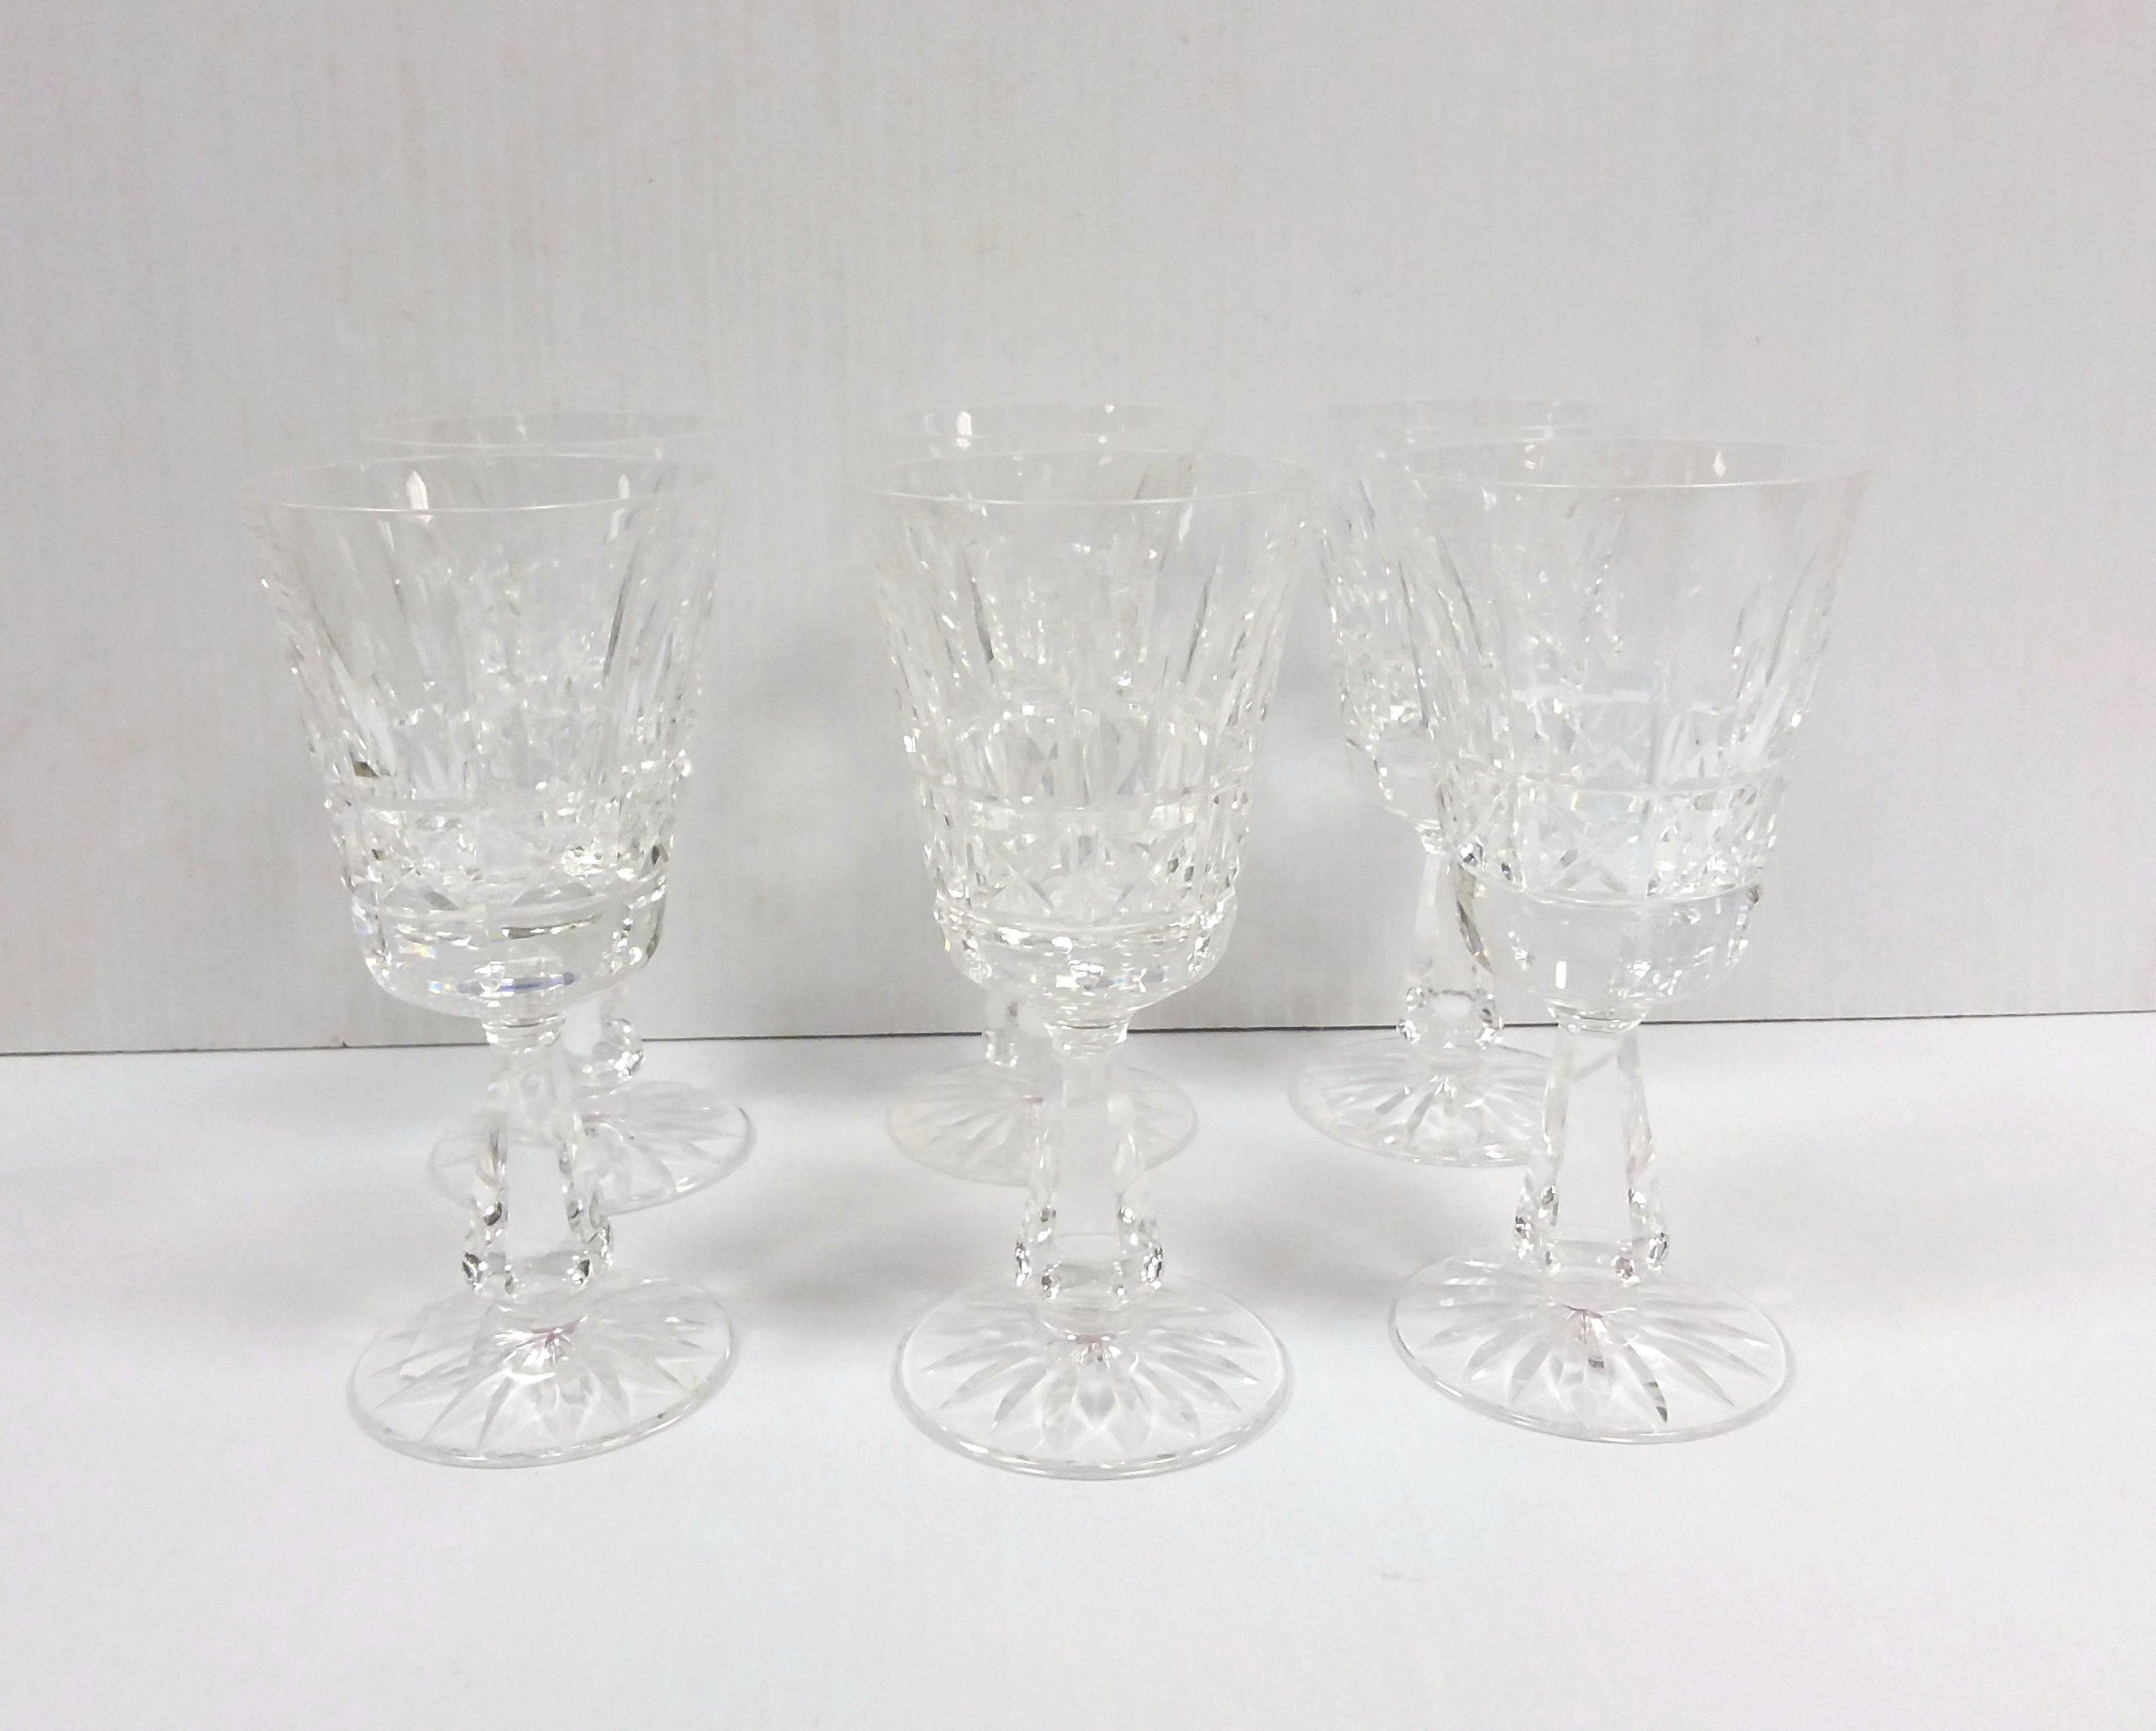 Set of 6 Waterford Crystal Wine Glasses